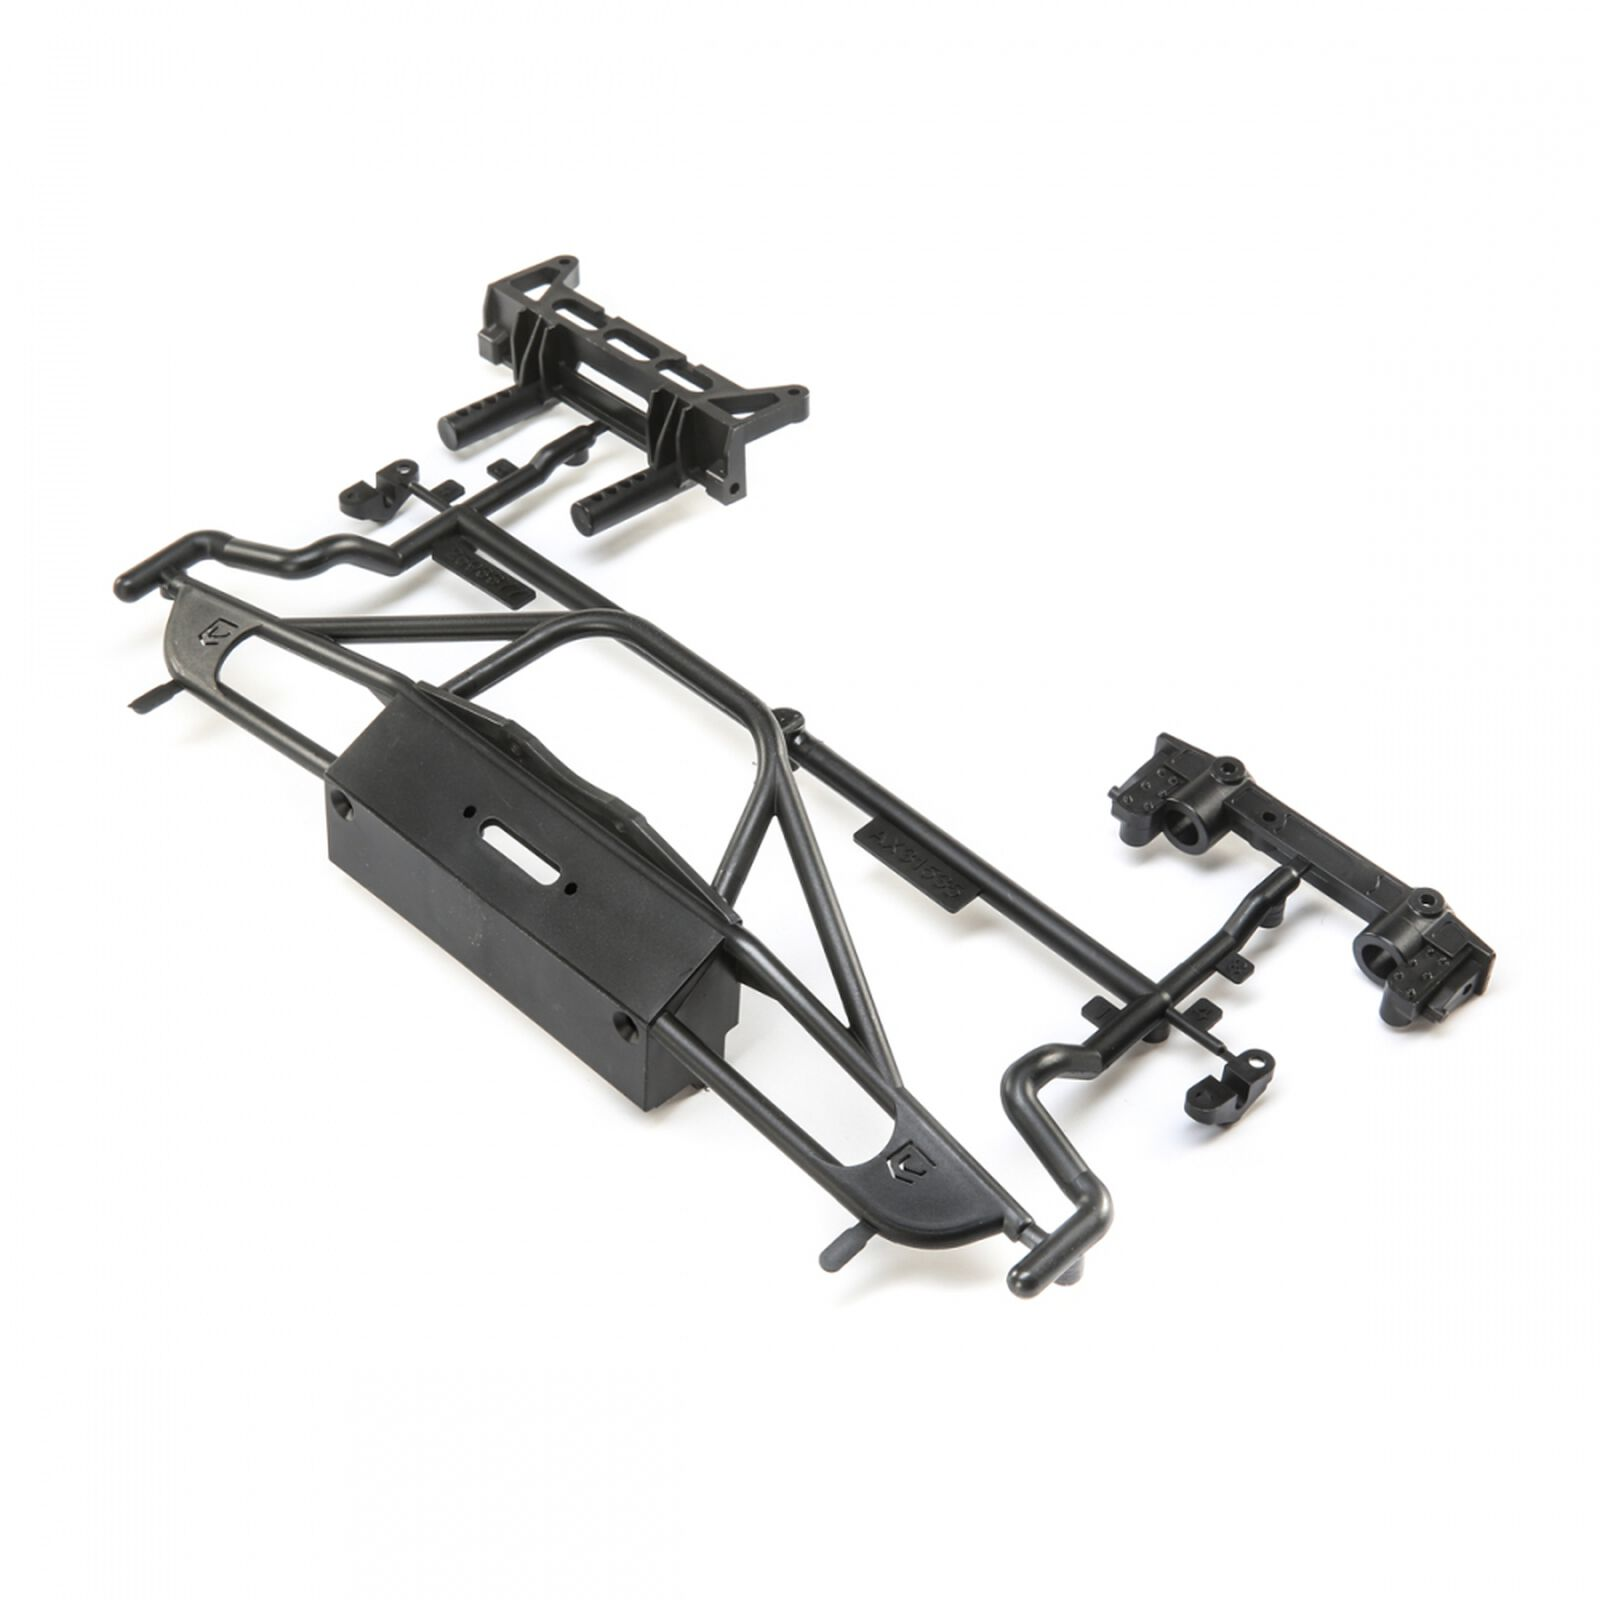 Chassis Unlimited K5 Front Bumper